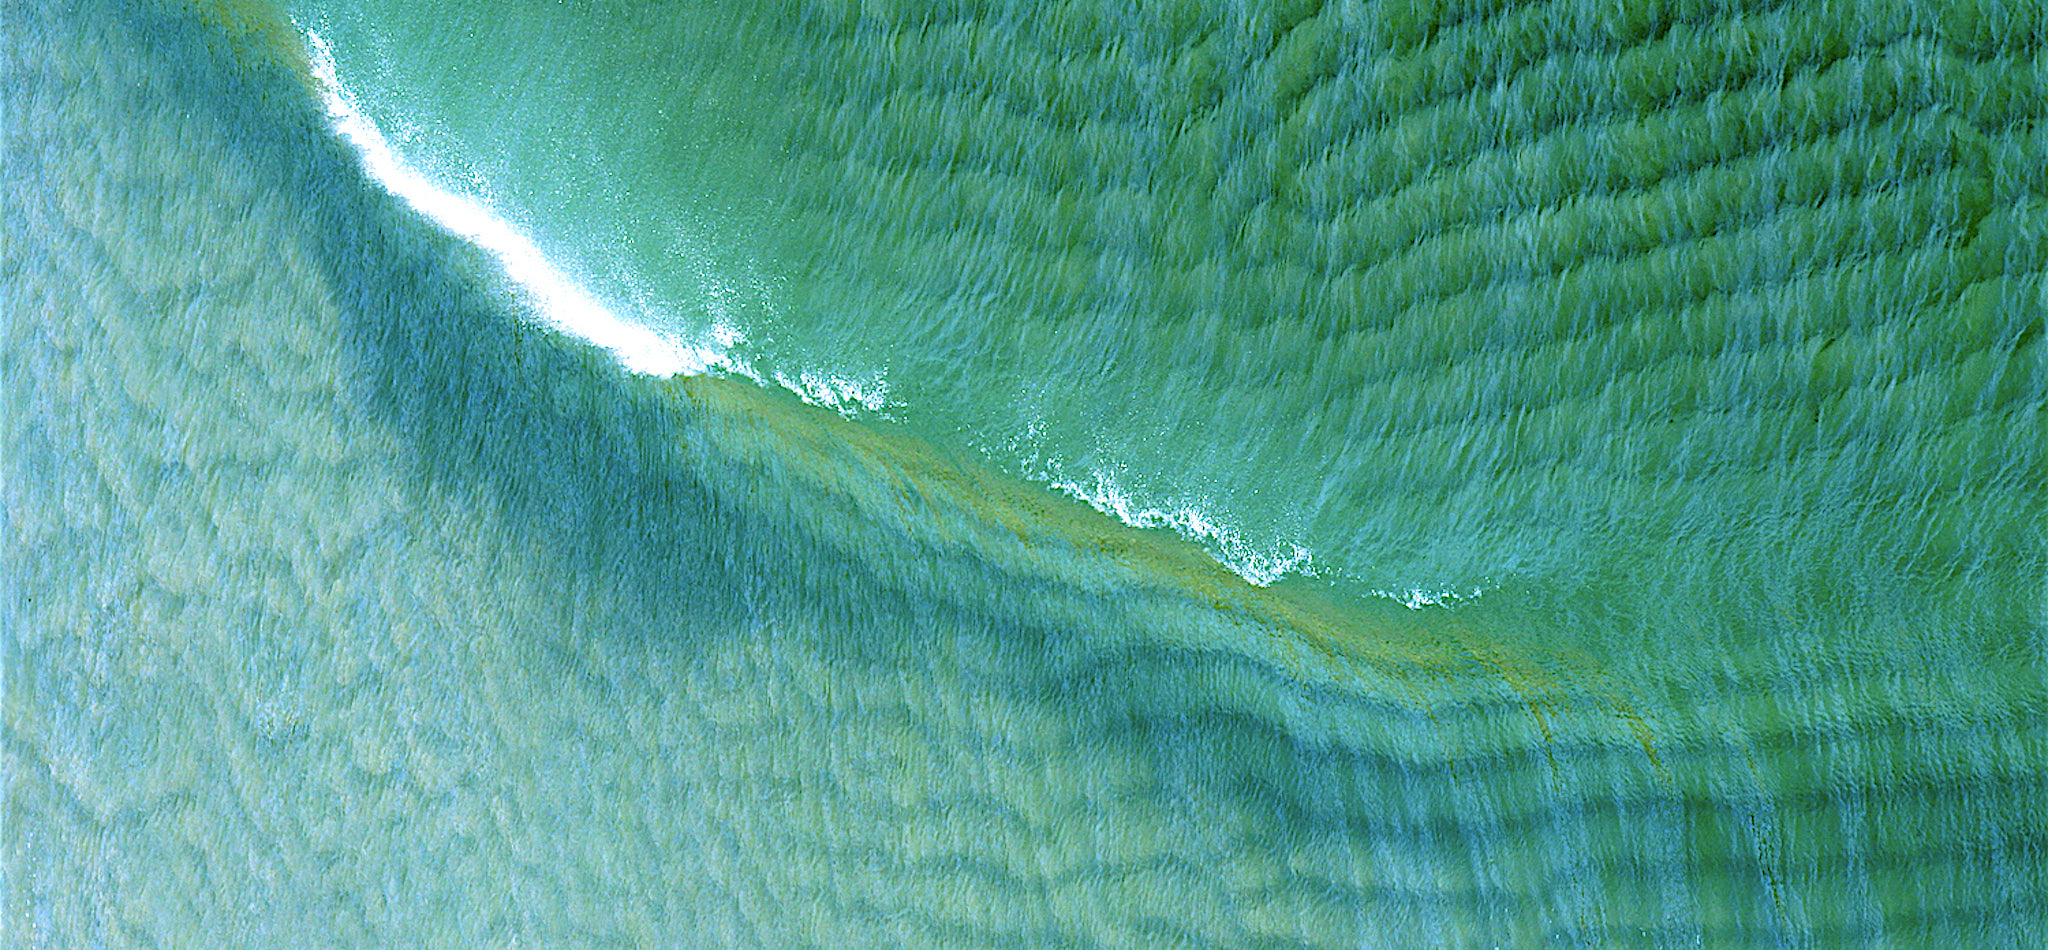 Sea Green - Reducing our Carbon Footprint